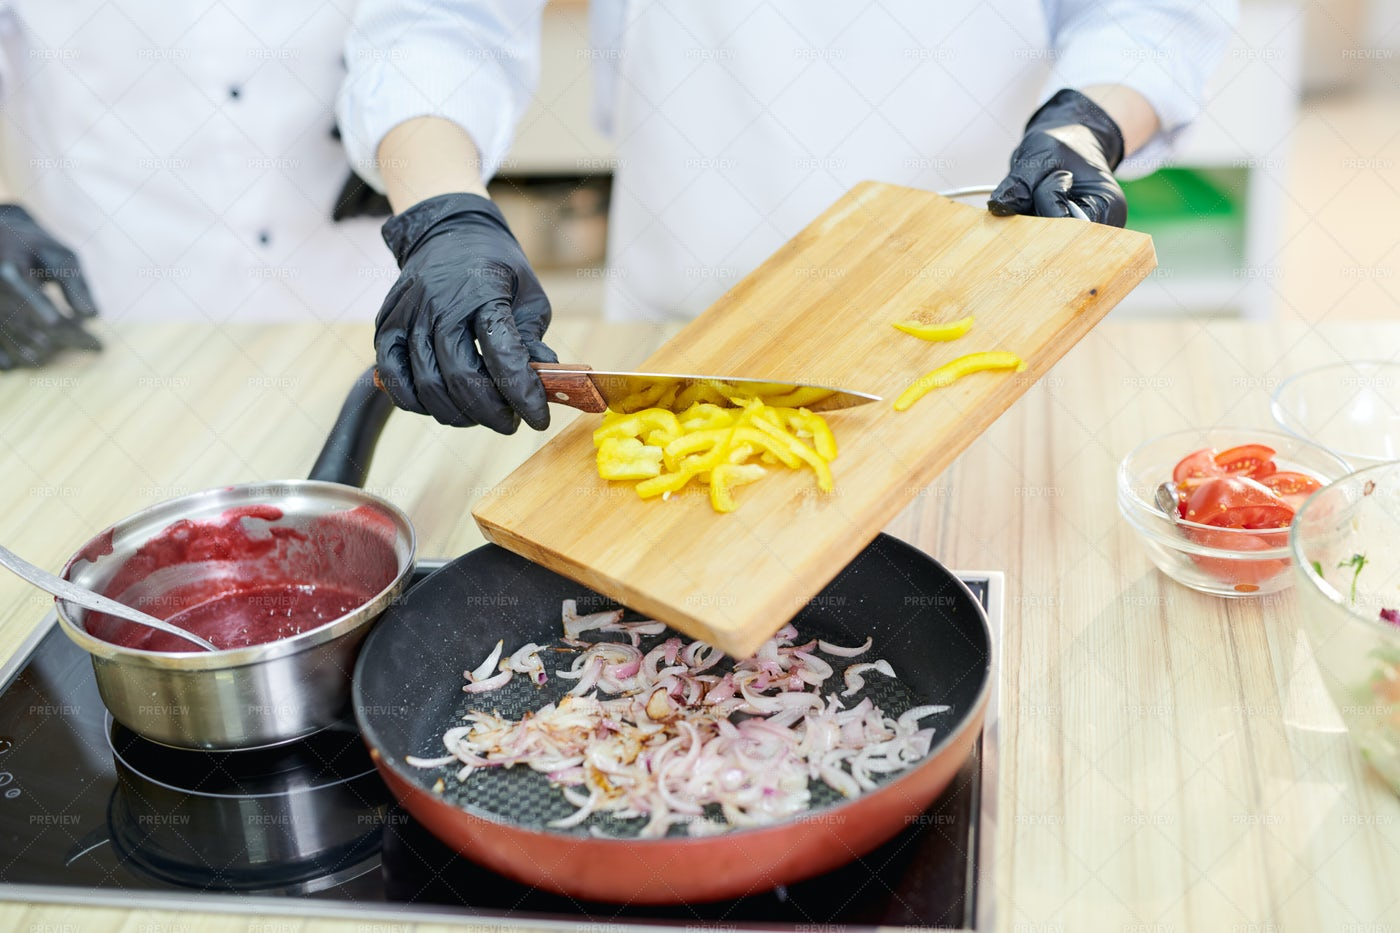 Chef Cooking Vegetables: Stock Photos